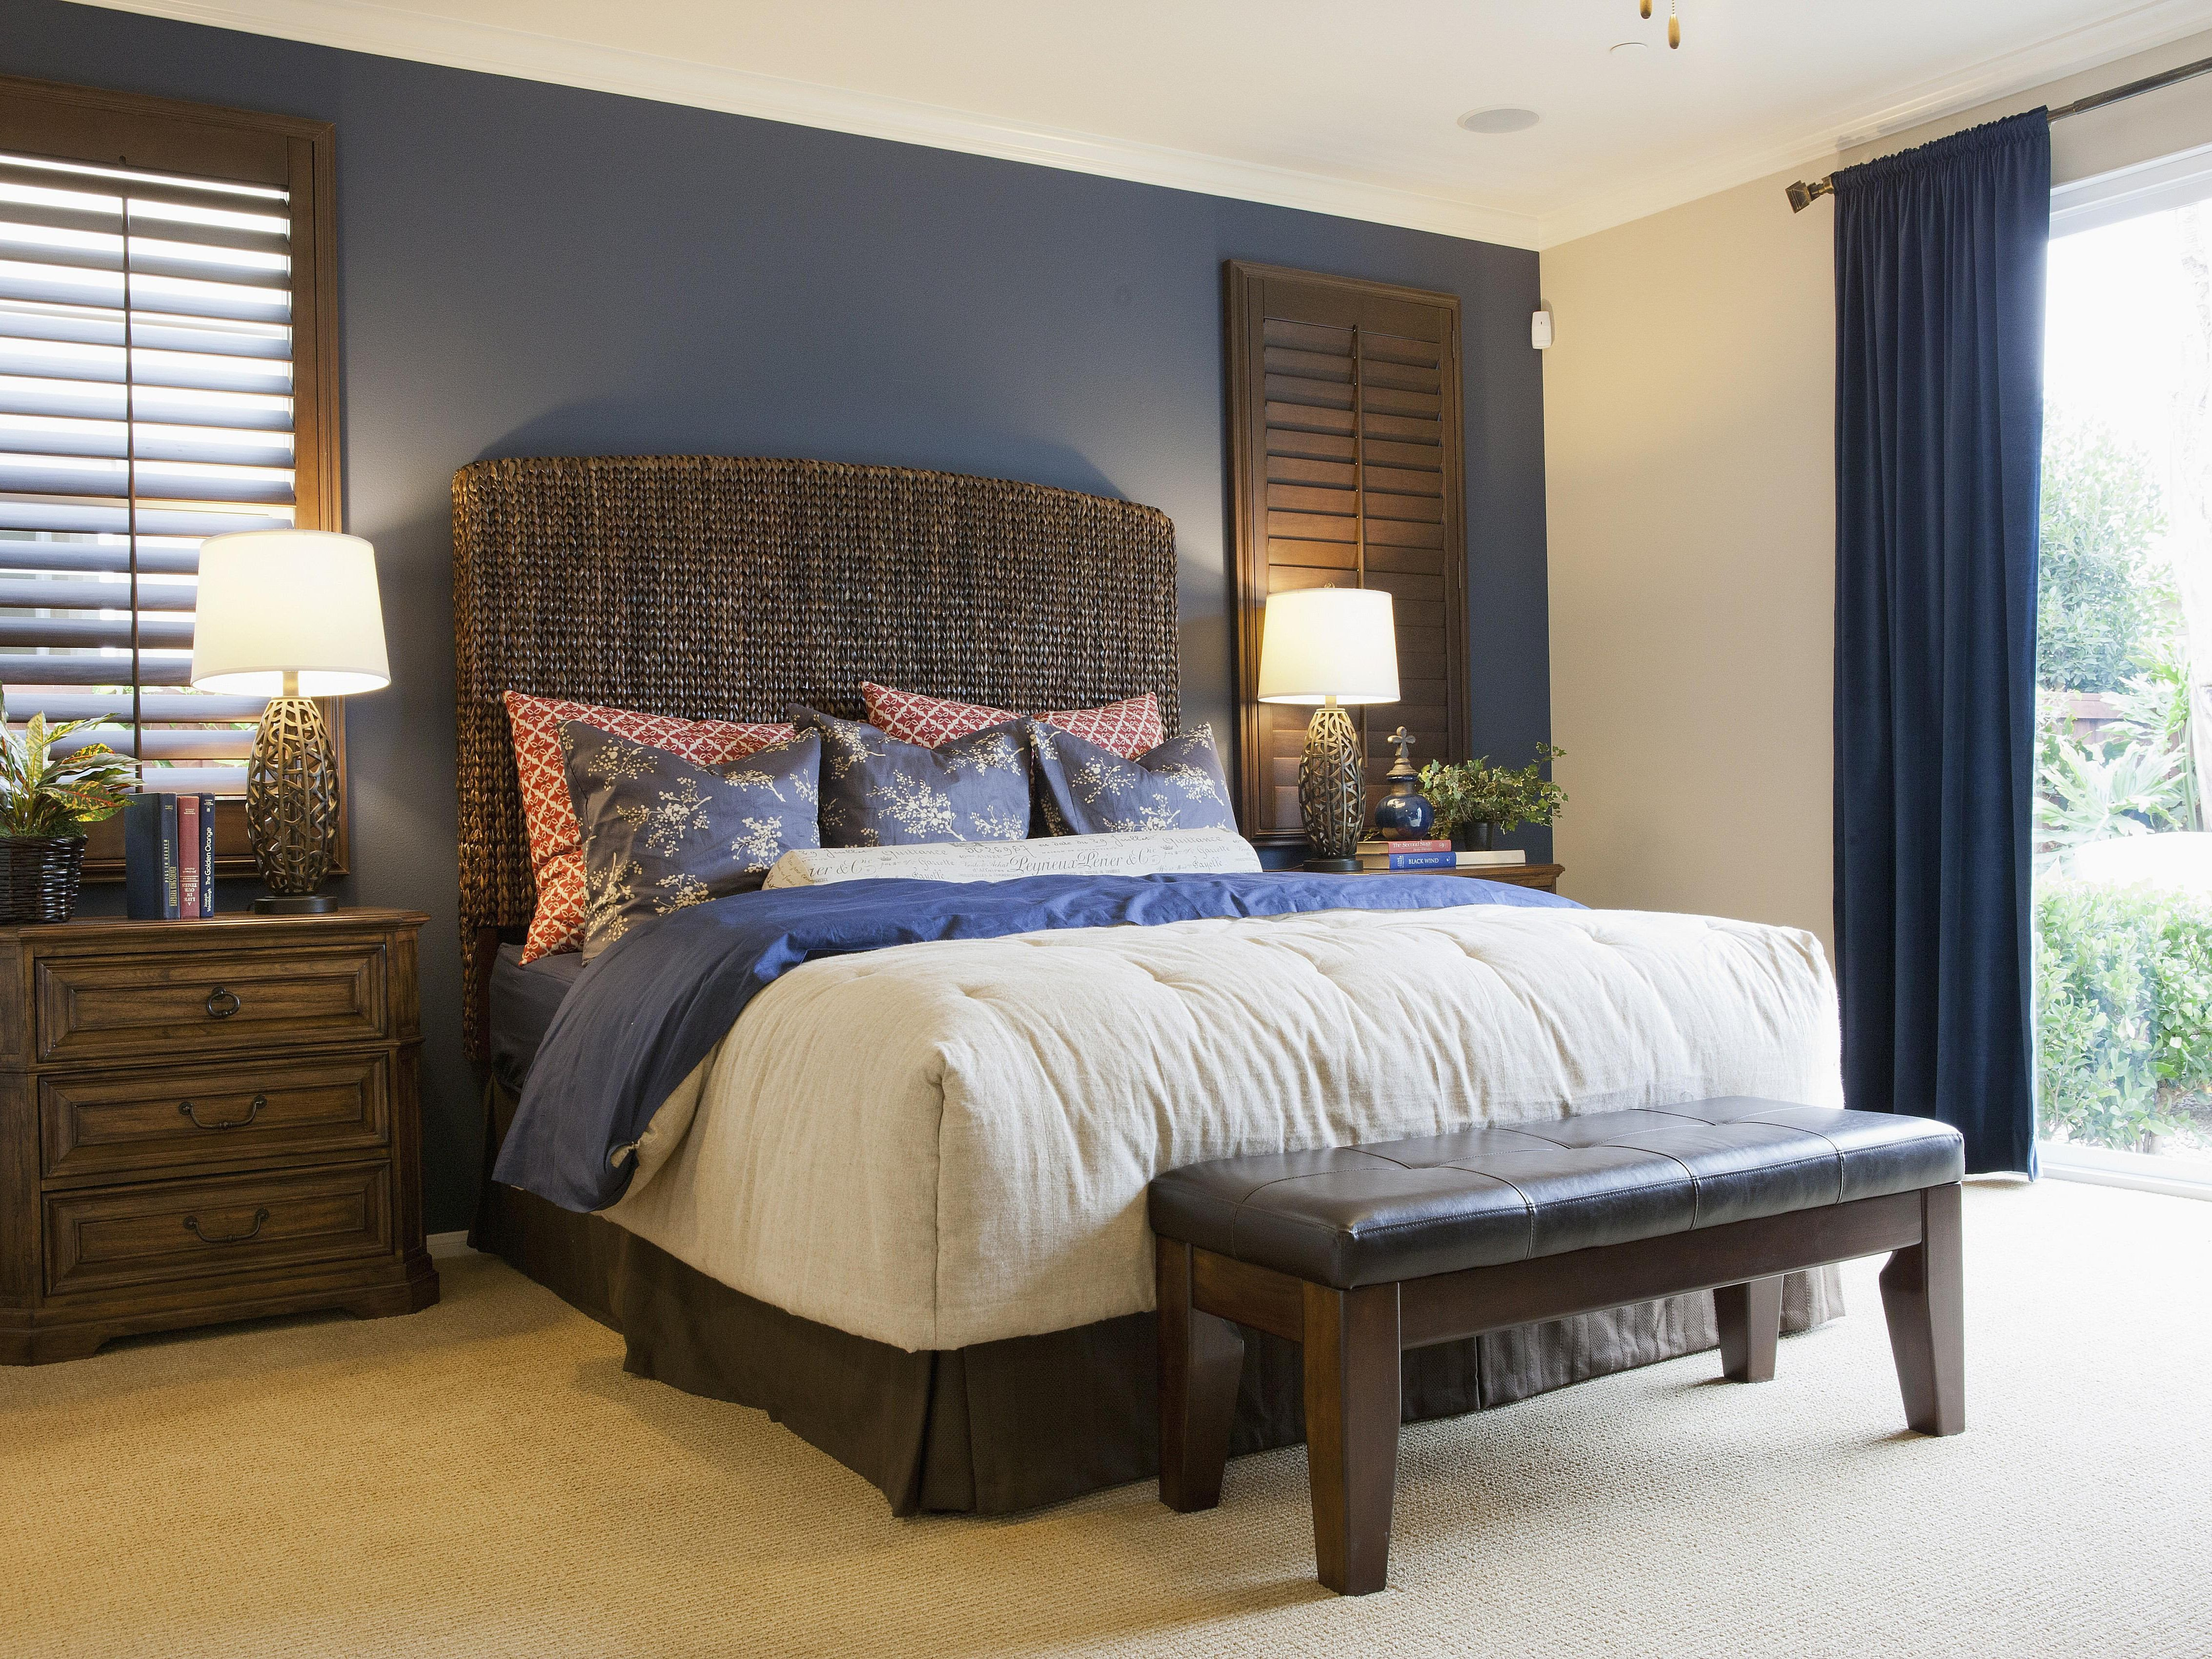 Wallpaper Accent Wall Bedroom Lovely How to Choose A Bedroom Accent Wall and Color